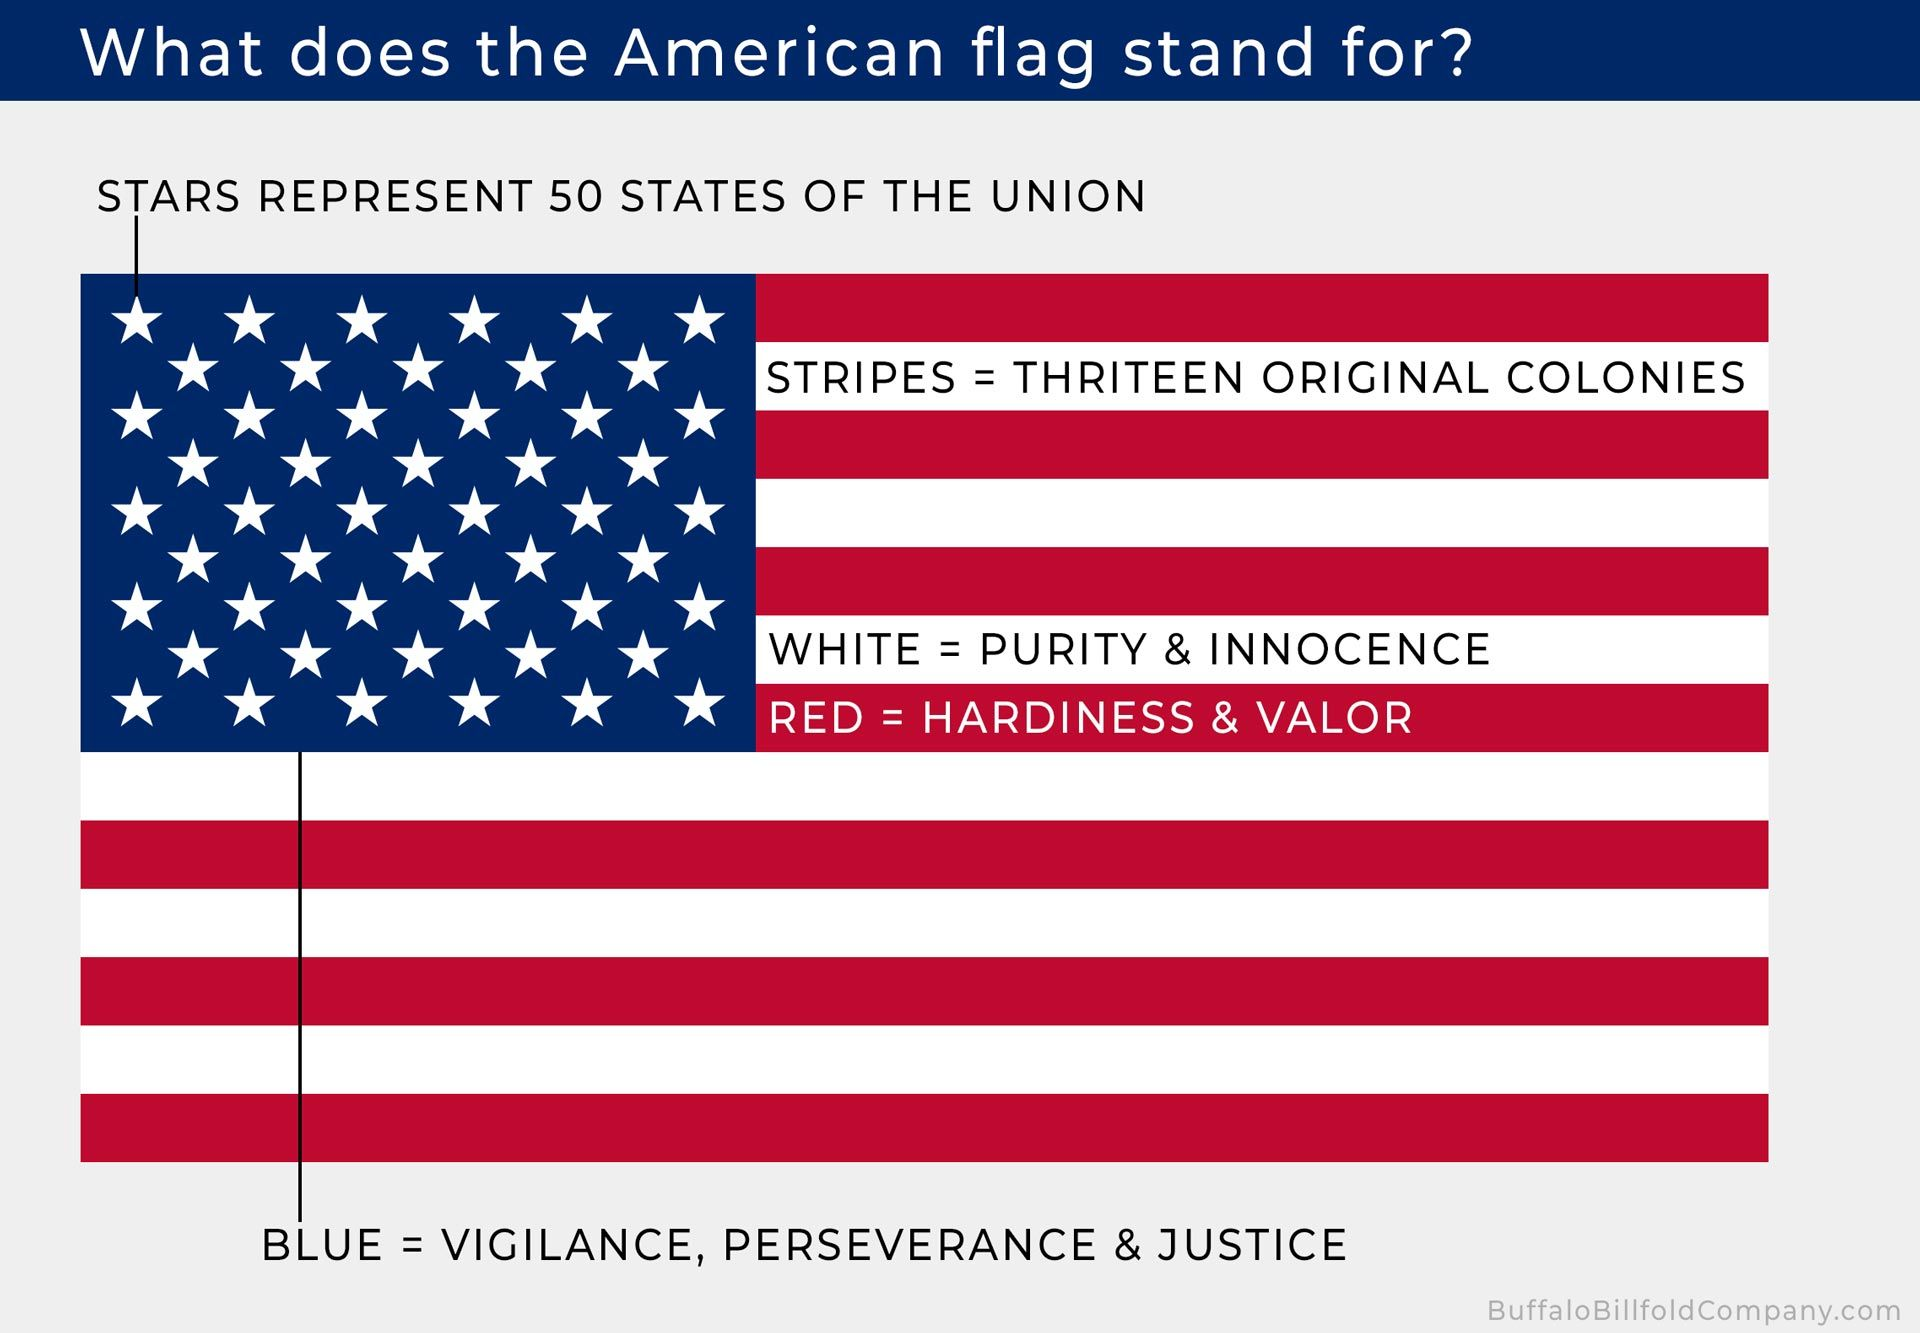 Ask Learn What Does The American Flag Stand For Buffalo American Flag Meaning Flag Flag Stand